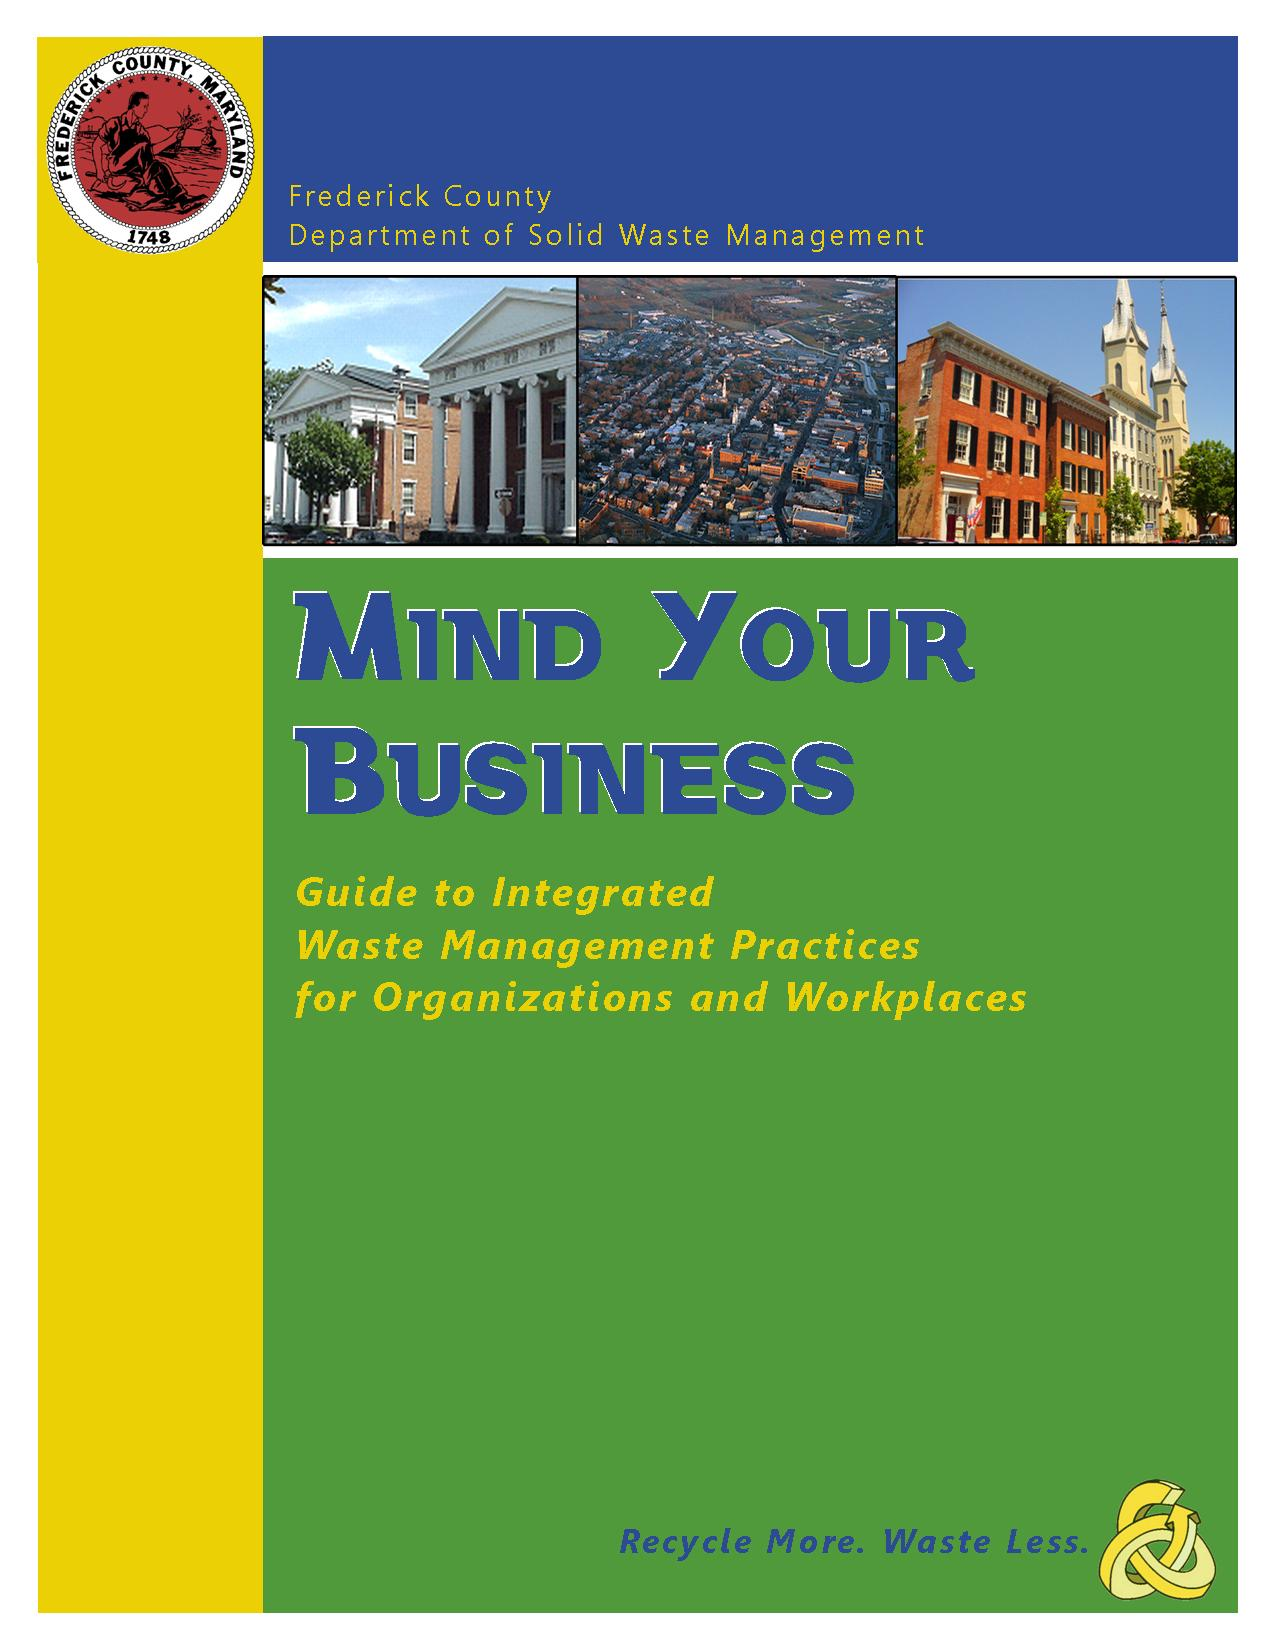 Business Guidebook